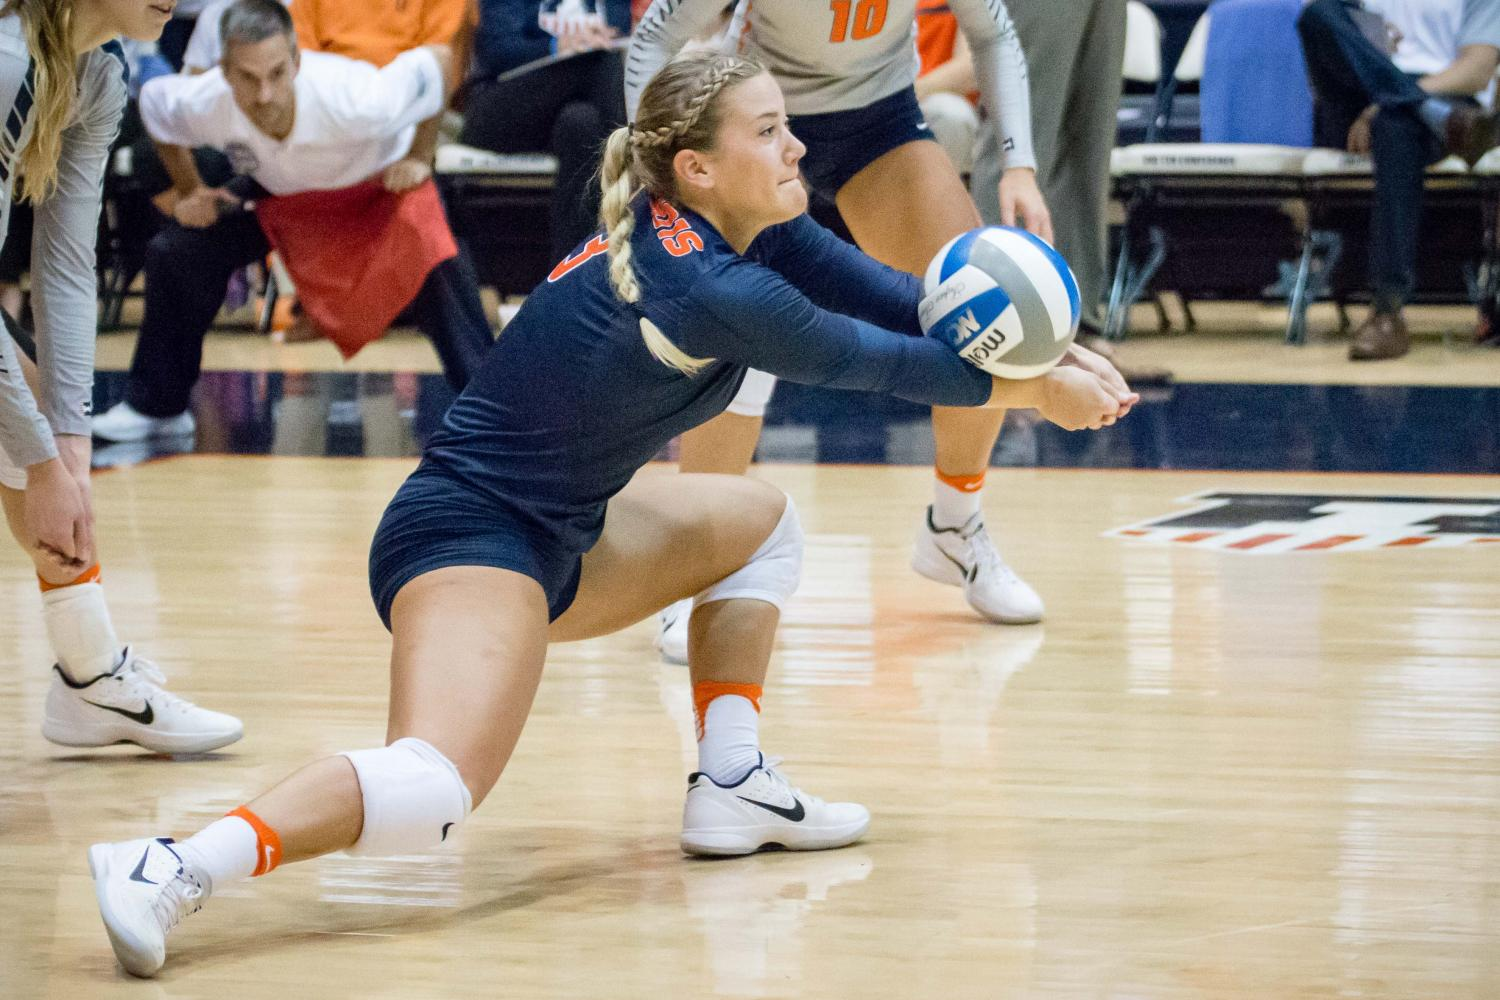 Illinois%27+Brandi+Donnelly+passes+the+ball+during+the+match+against+Northwestern+at+Huff+Hall+on+Oct.+15%2C+2916.+Donnelly%2C+the+only+senior+on+the+team%2C+will+bring+veteran+advice+to+her+teammates.+